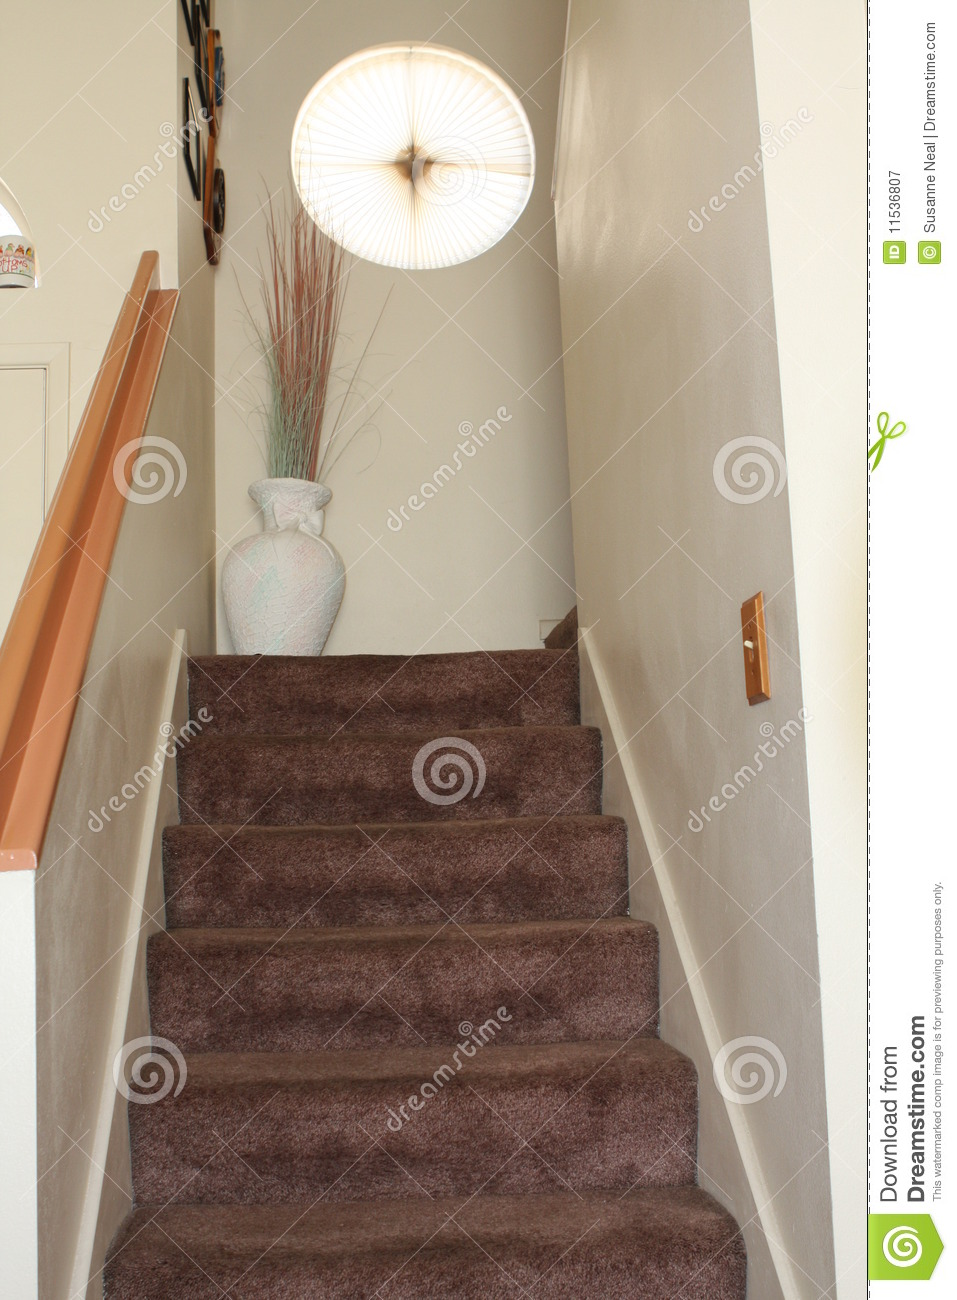 Carpeted Stairs In Home Royalty Free Stock Photography